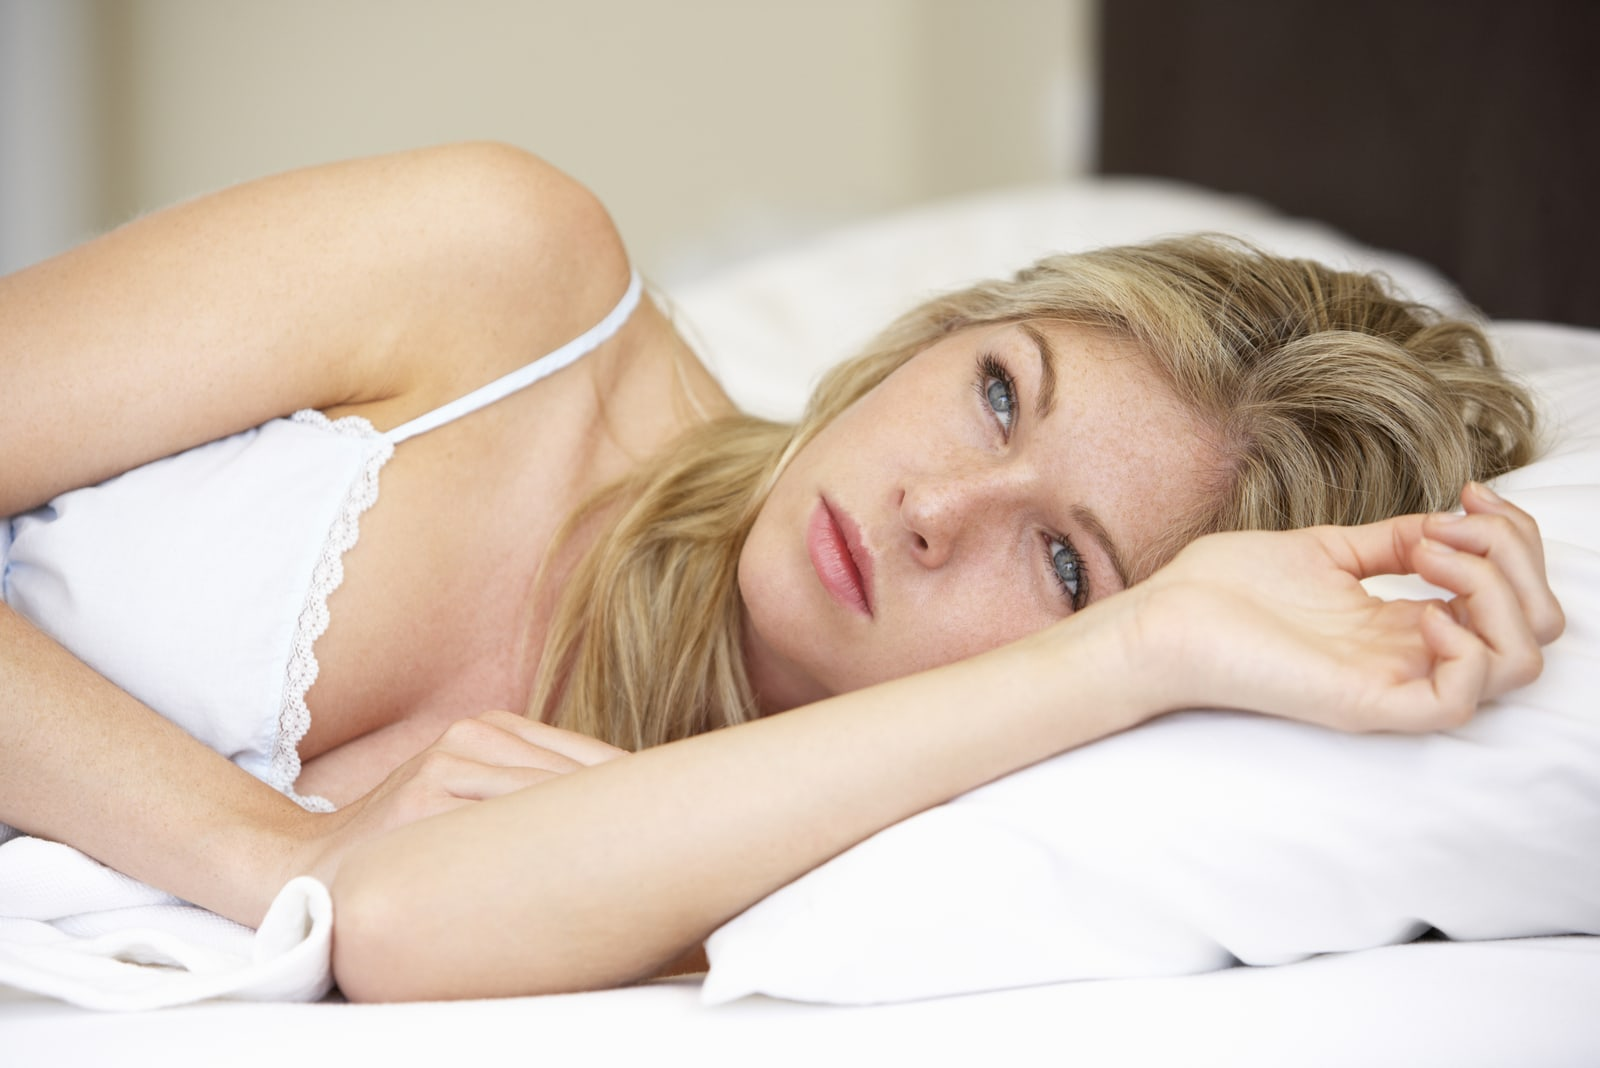 sad blond woman lying in bed